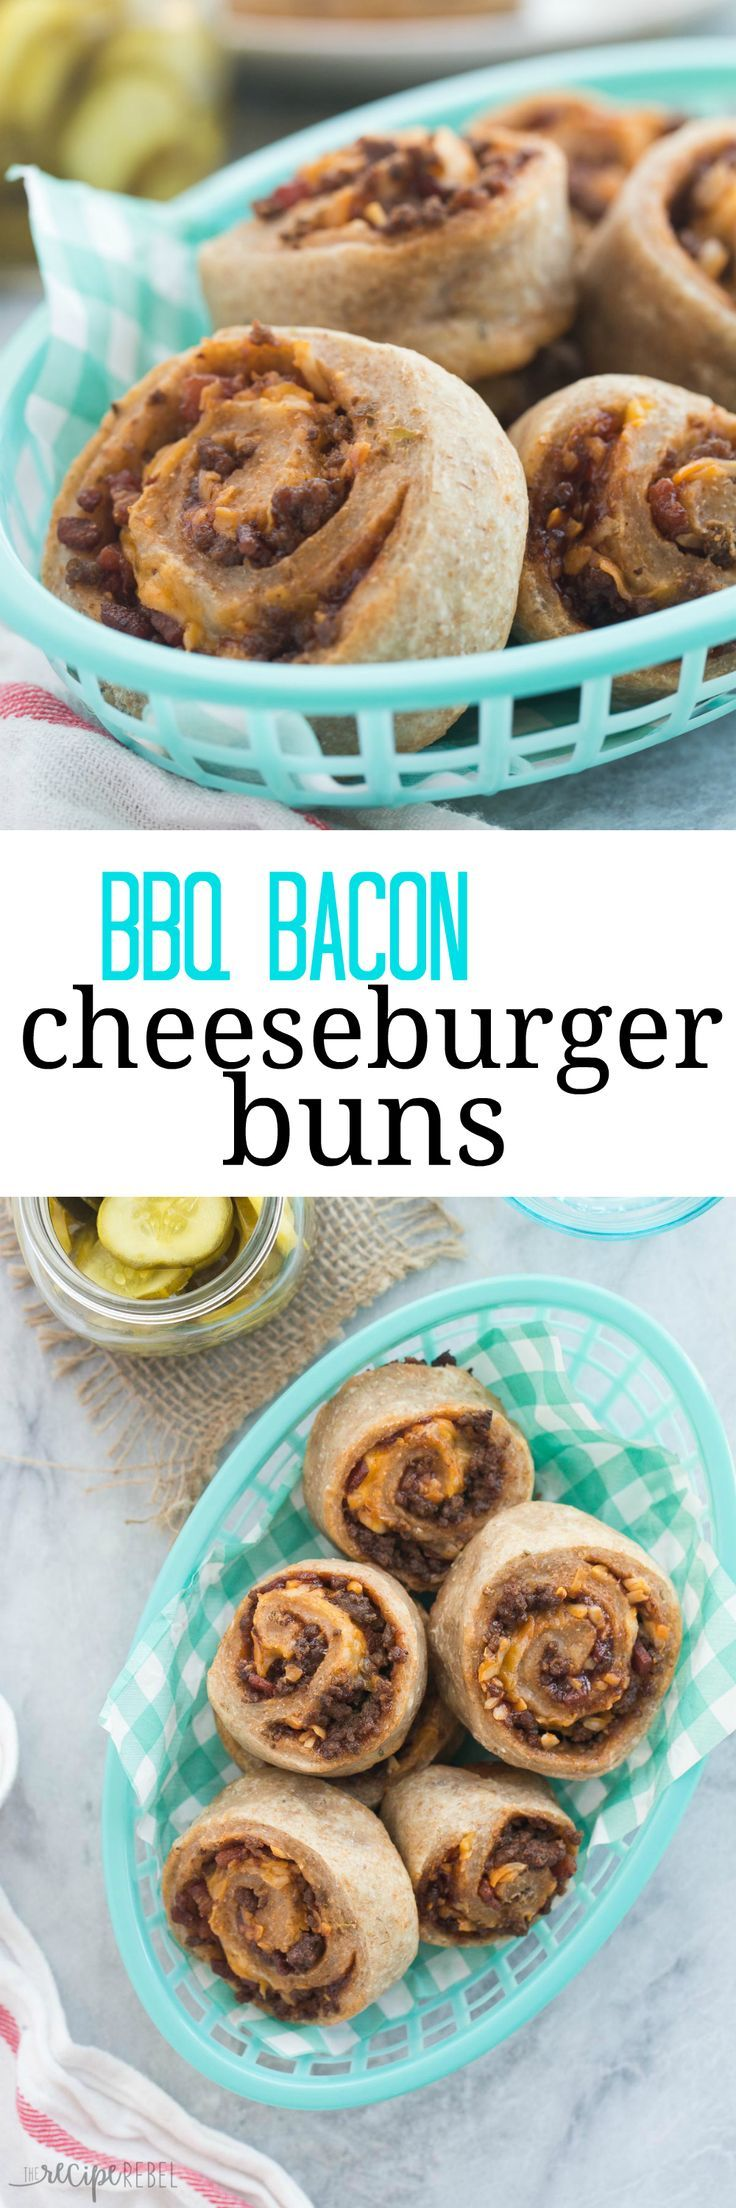 These BBQ Bacon Cheeseburger Buns are perfectly portable for road trips, picnics or school lunches and they're freezer friendly! Use store bought bun or pizza dough to make these even easier.